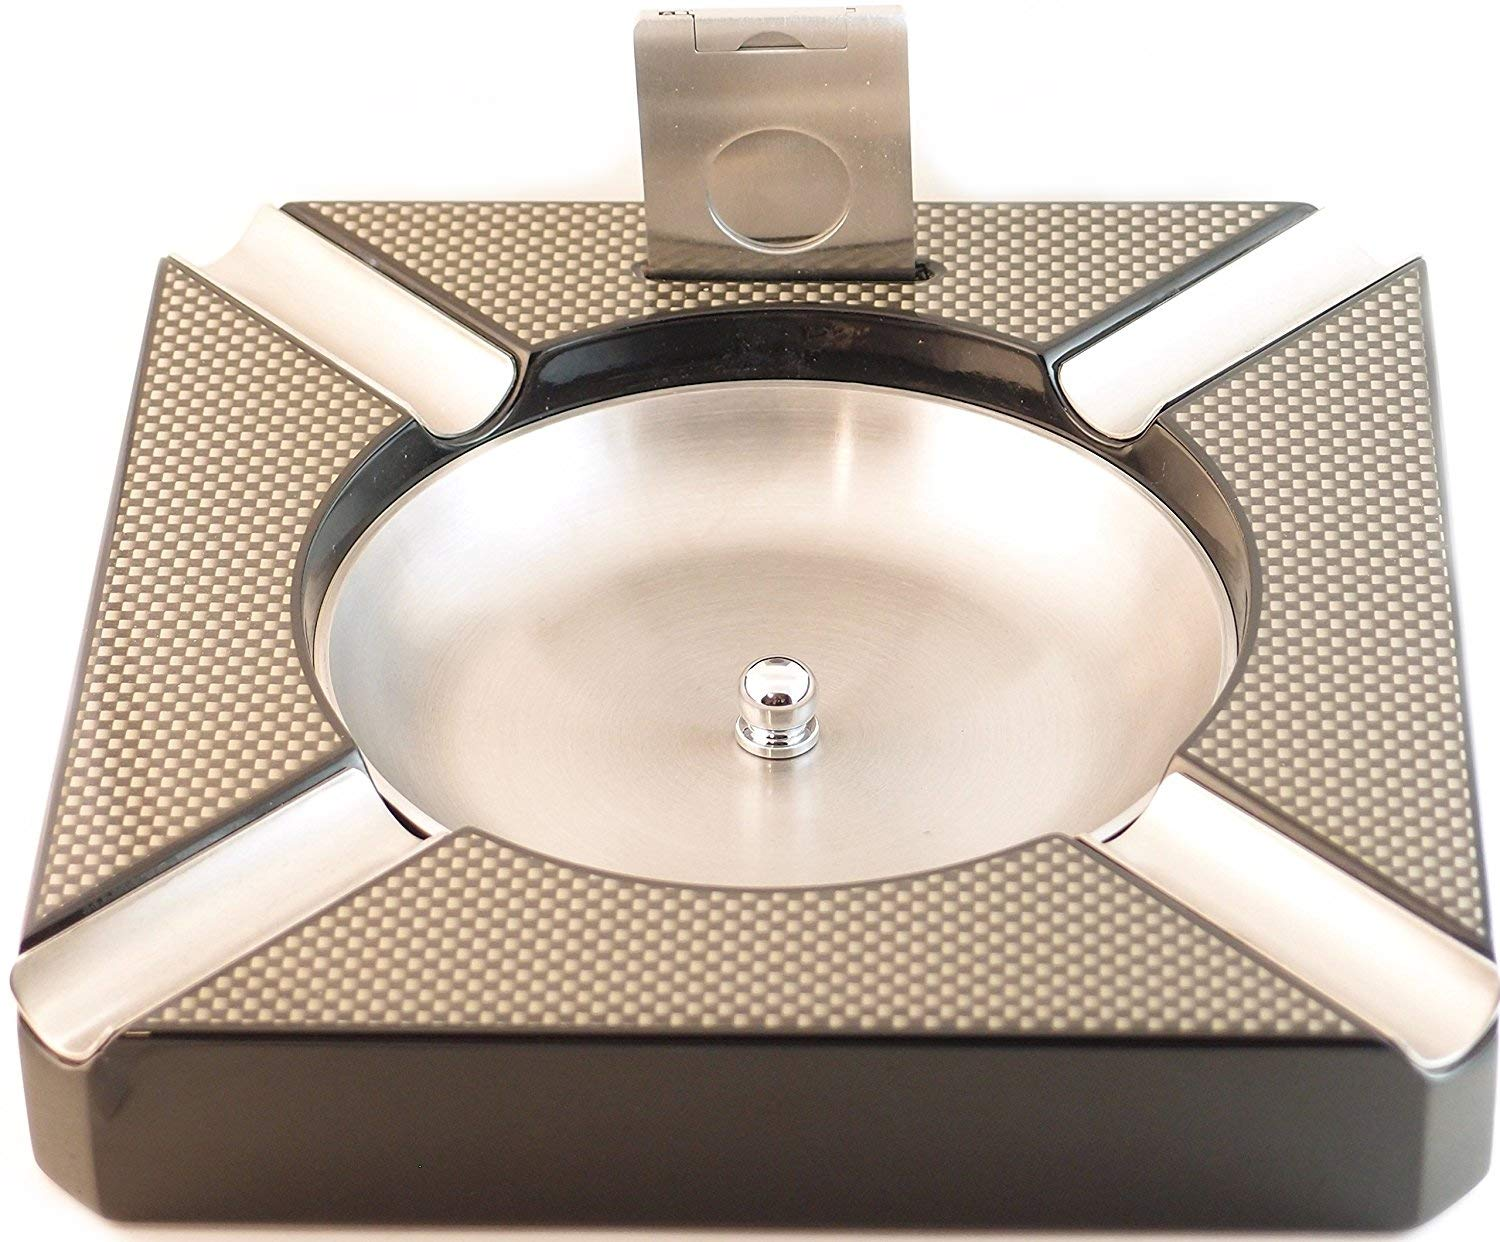 Cigar Ash Tray with Built In Cigar Cutter